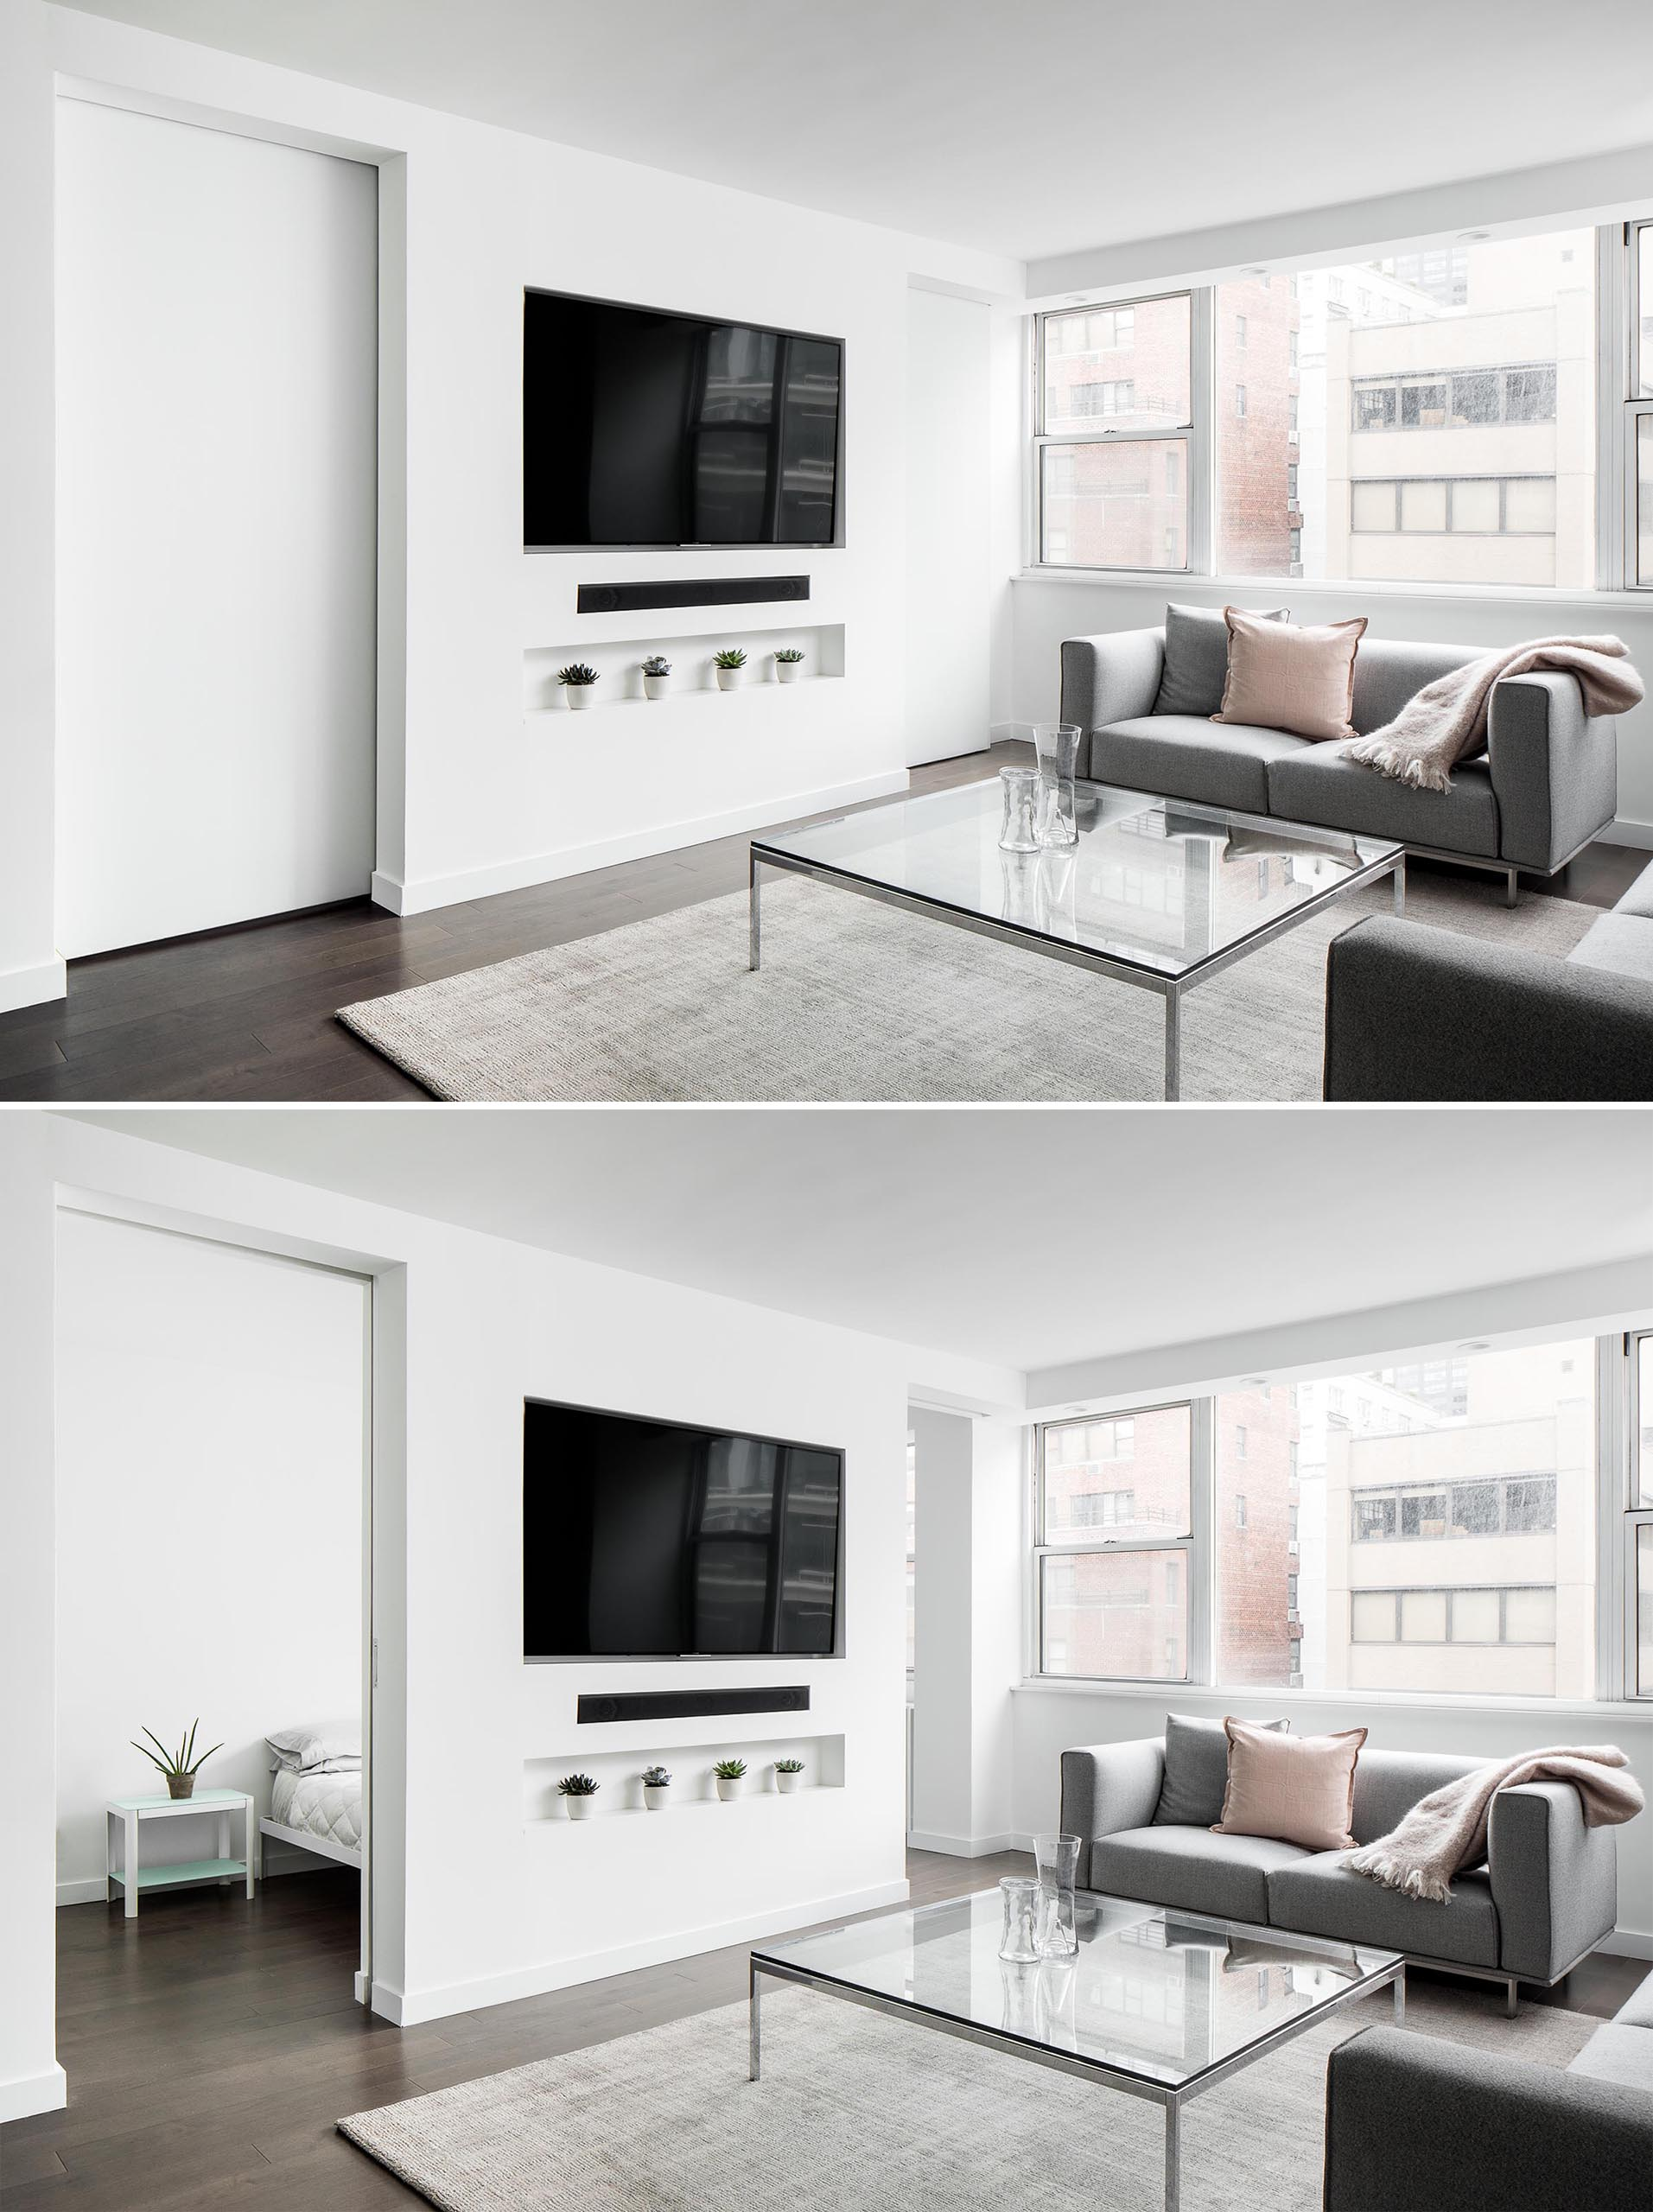 This small and modern living room is flooded with natural light while the recessed television is located above a shelving niche. Sliding doors on either side of the television wall lead to the bedroom.